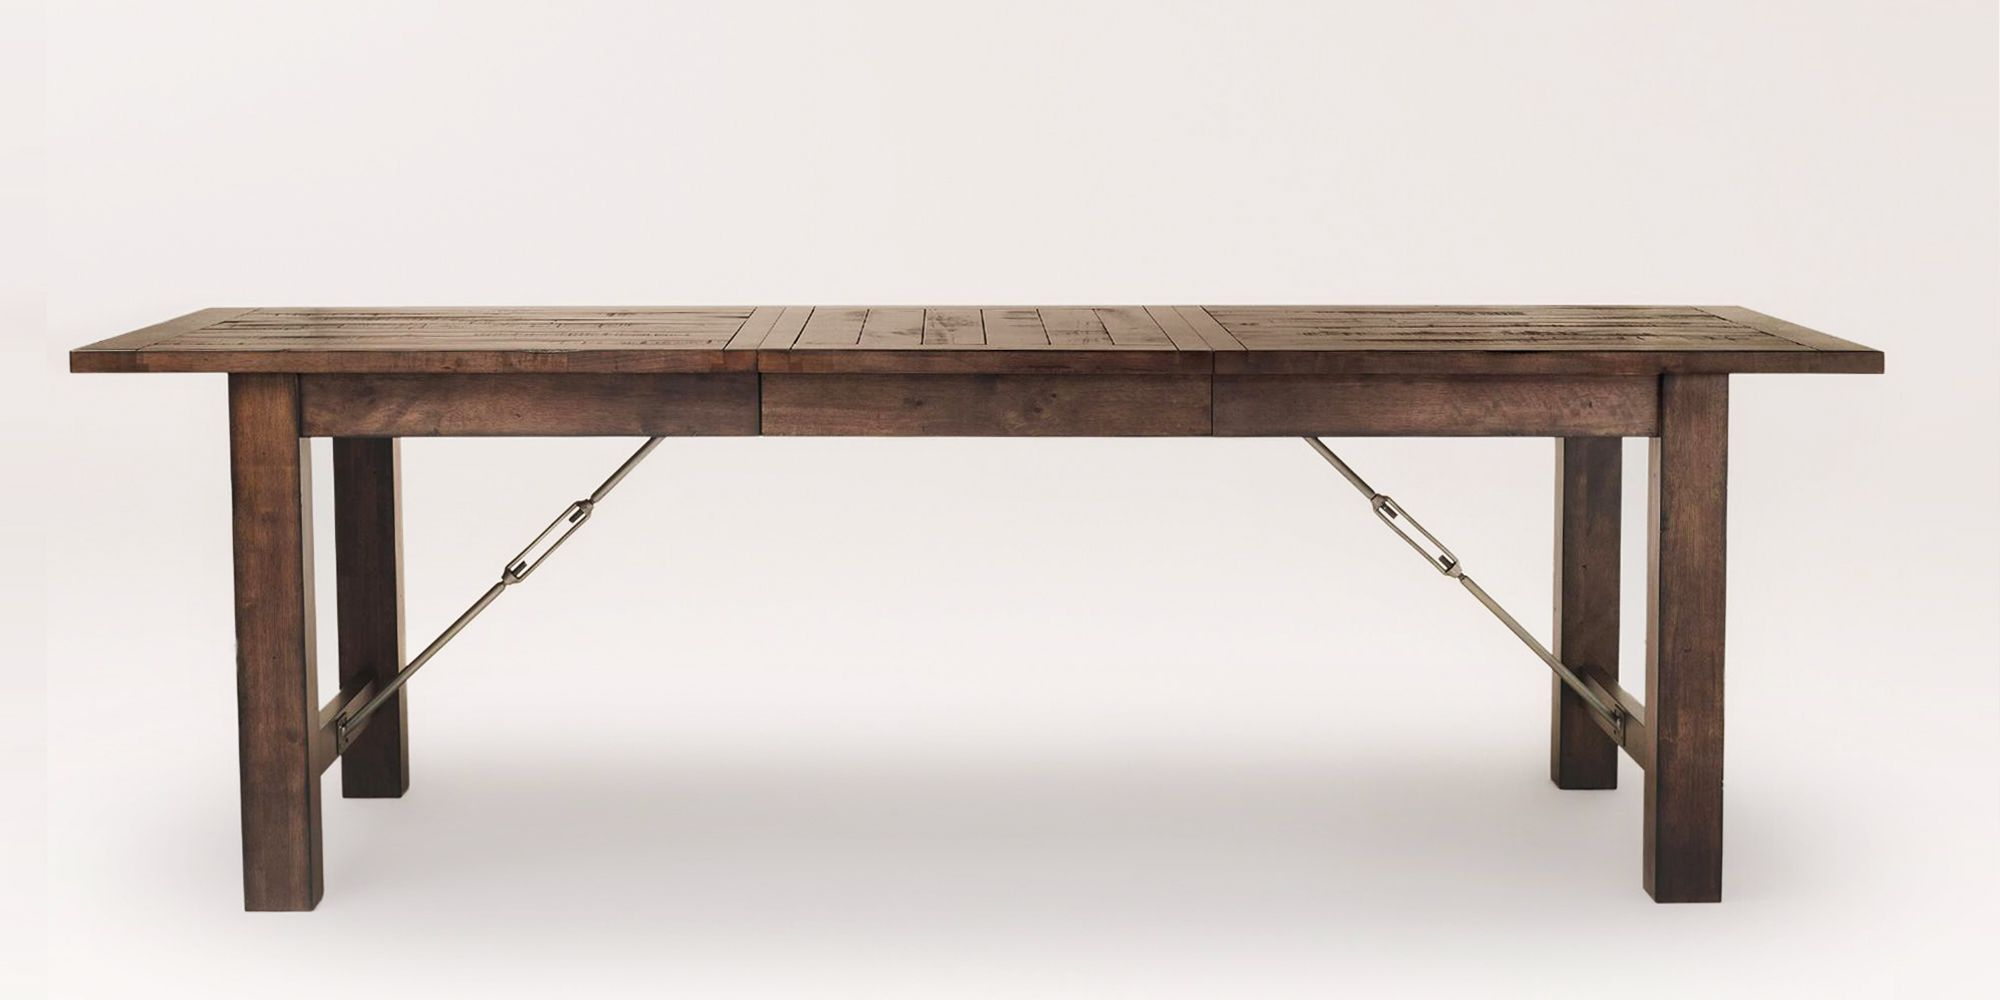 10 Best Rustic Dining Tables In 2018 – Wood Dining Room Throughout Current Acacia Top Dining Tables With Metal Legs (View 1 of 25)